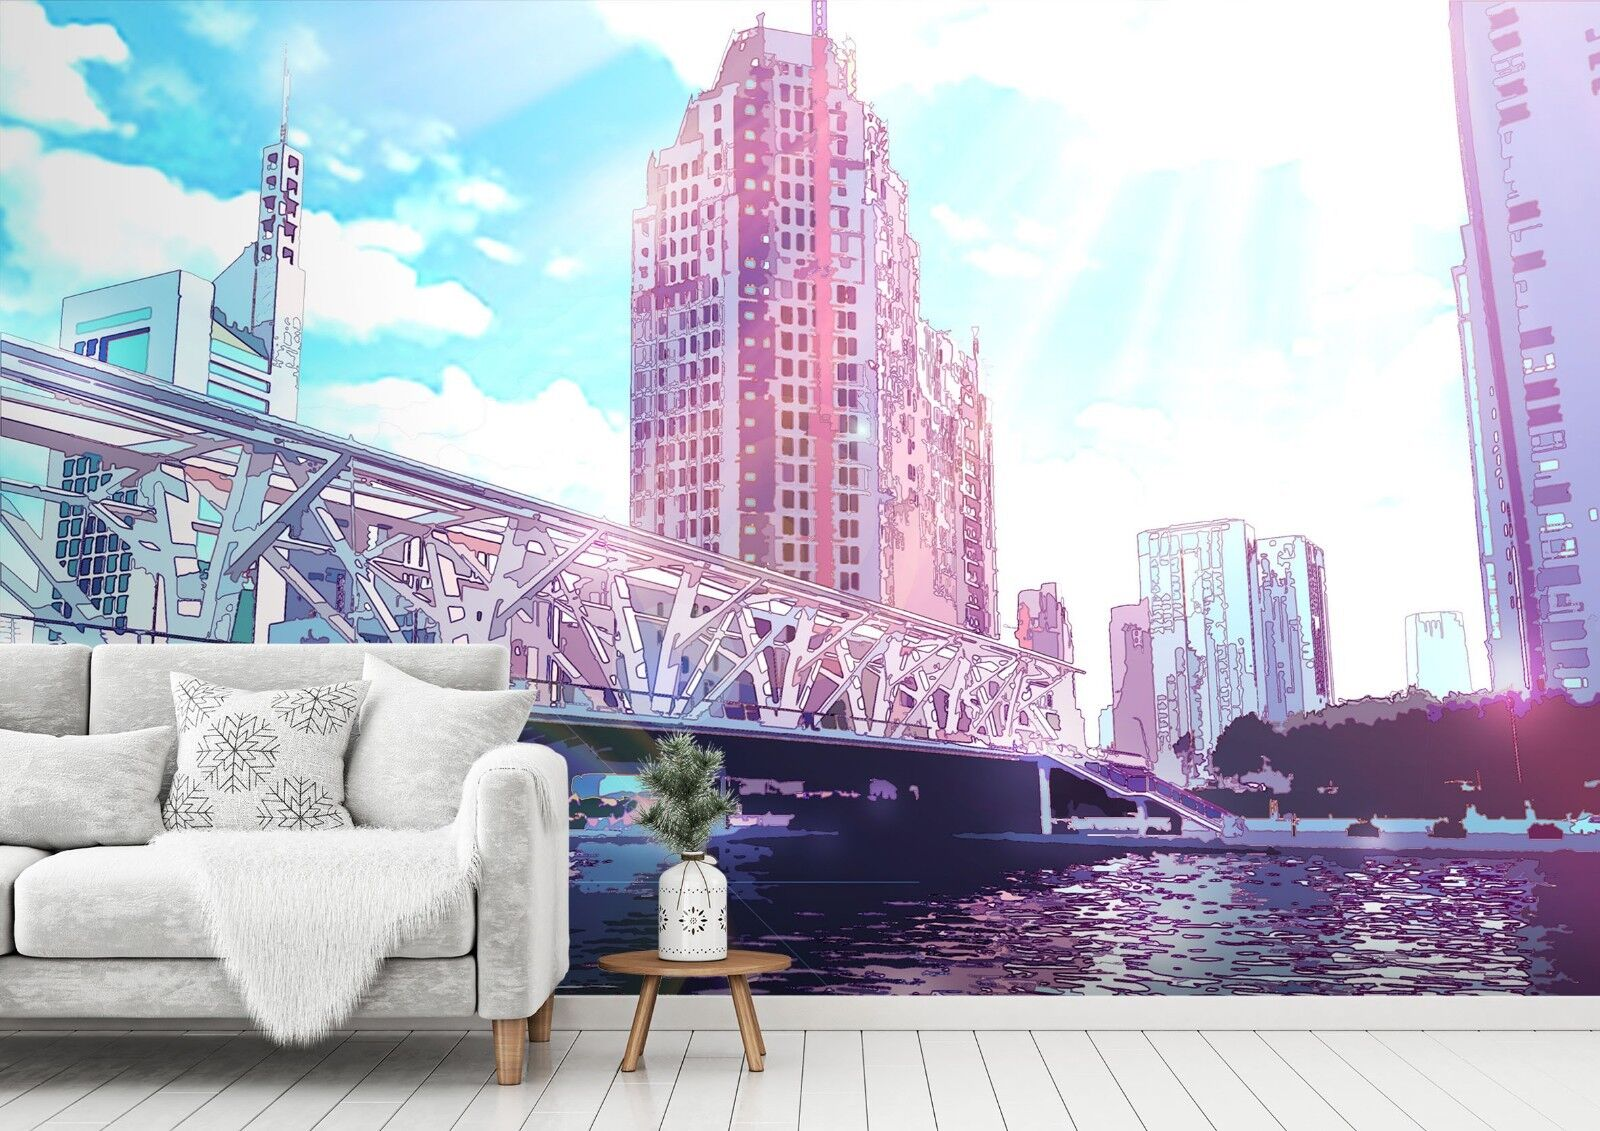 3D Anime City Scenery 45 Wall Paper Wall Print Decal Deco Indoor Wall Mural CA